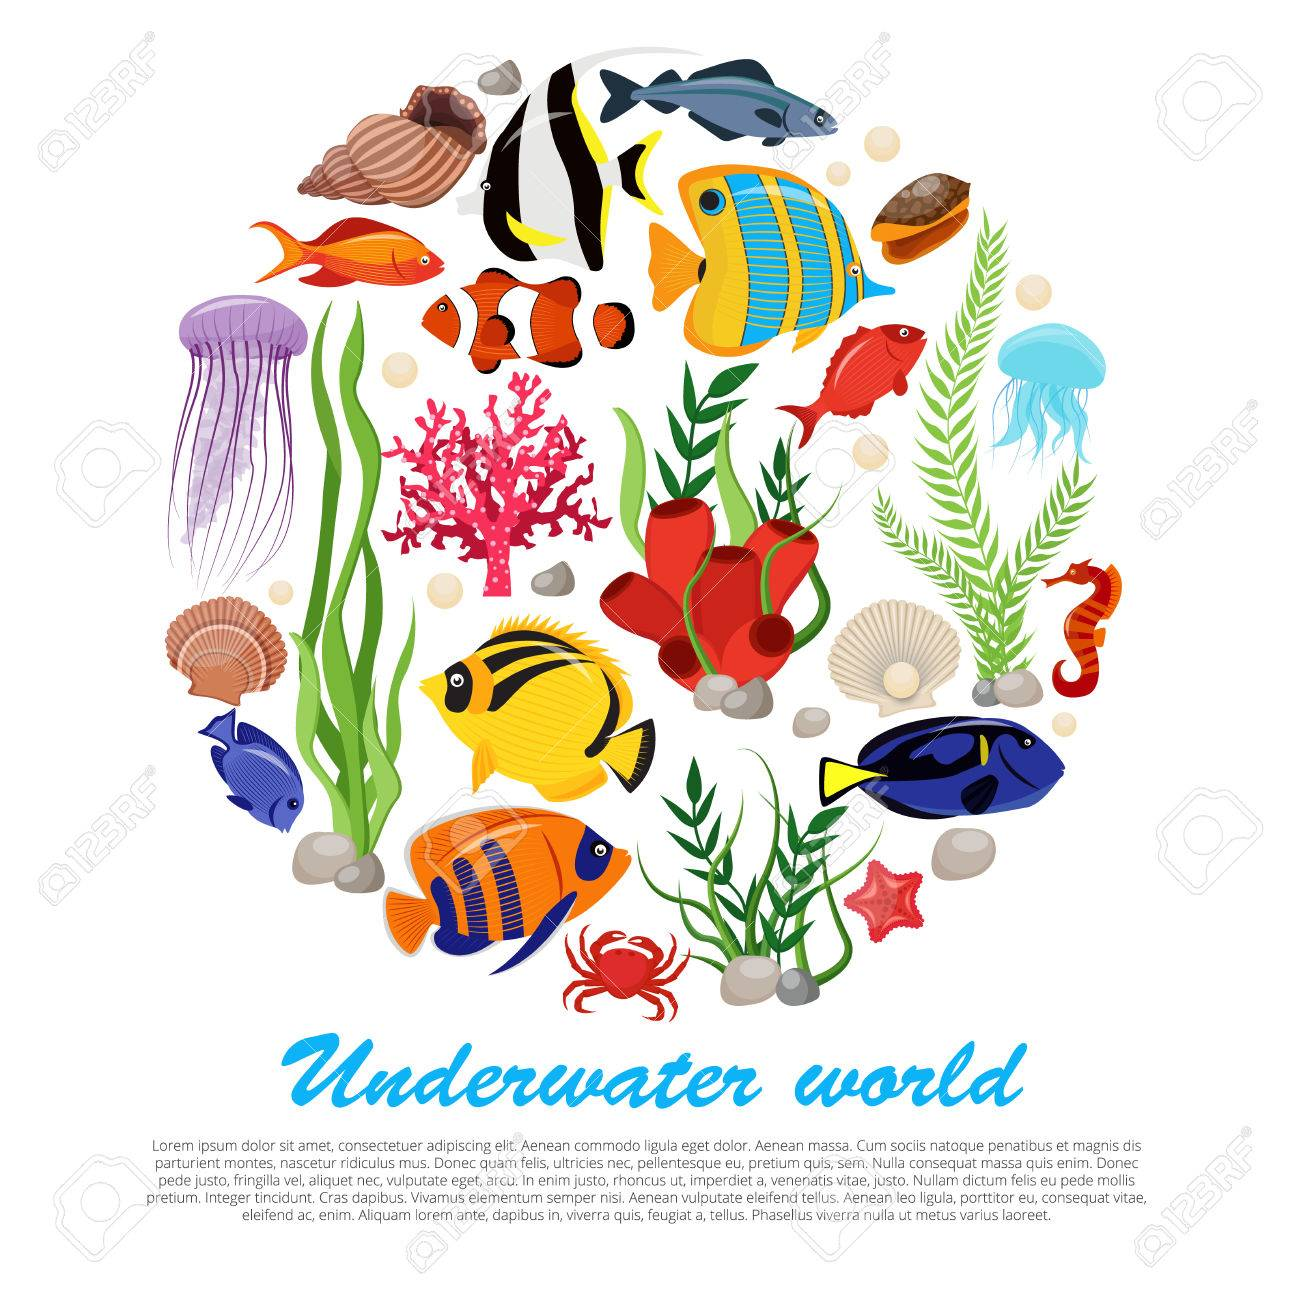 Sea life animals plants poster with isolated icon set combined in big round and underwater world description vector illustration - 62918377